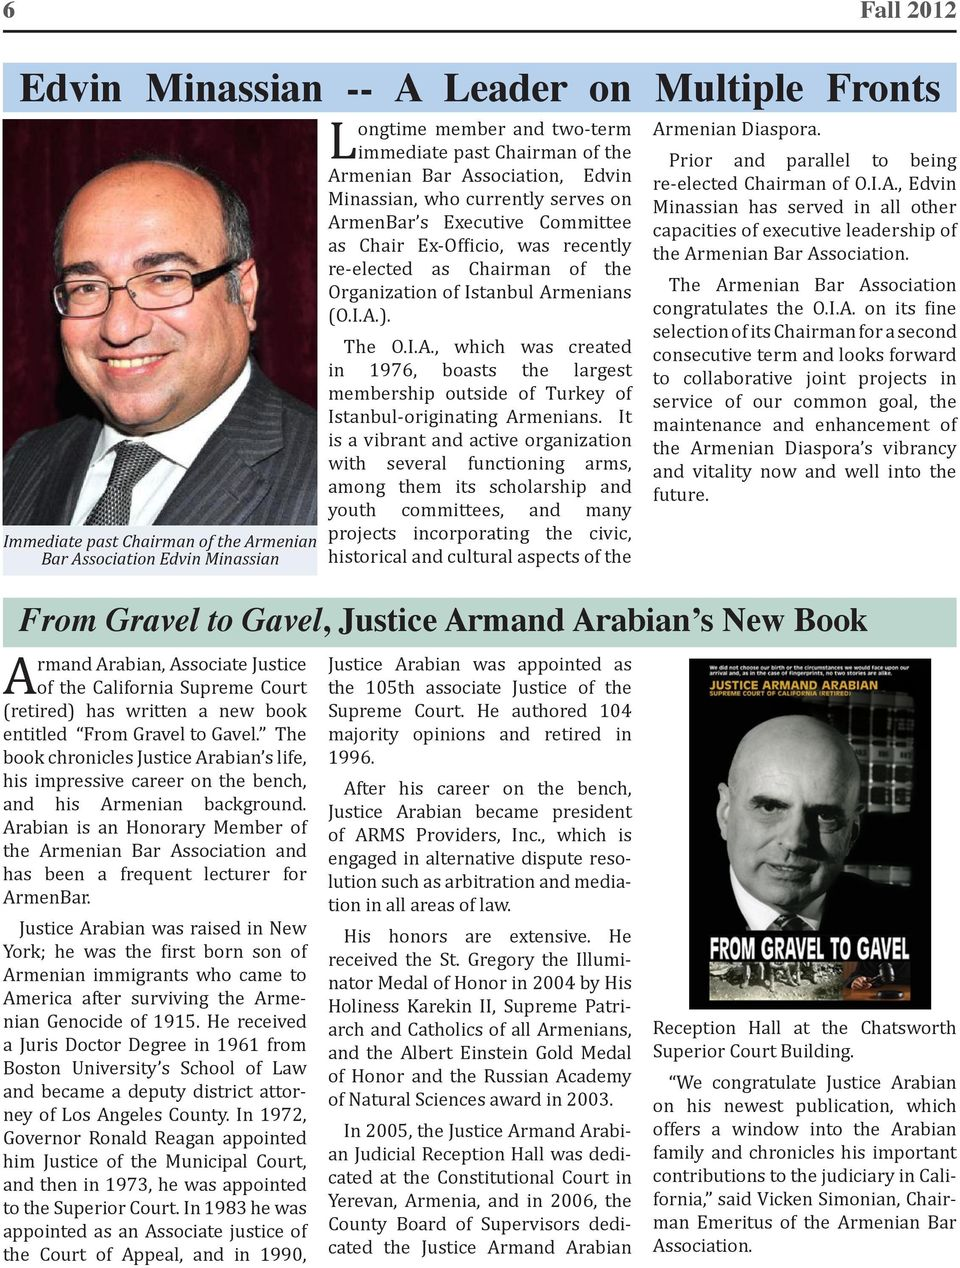 Arabian is an Honorary Member of the Armenian Bar Association and has been a frequent lecturer for ArmenBar.